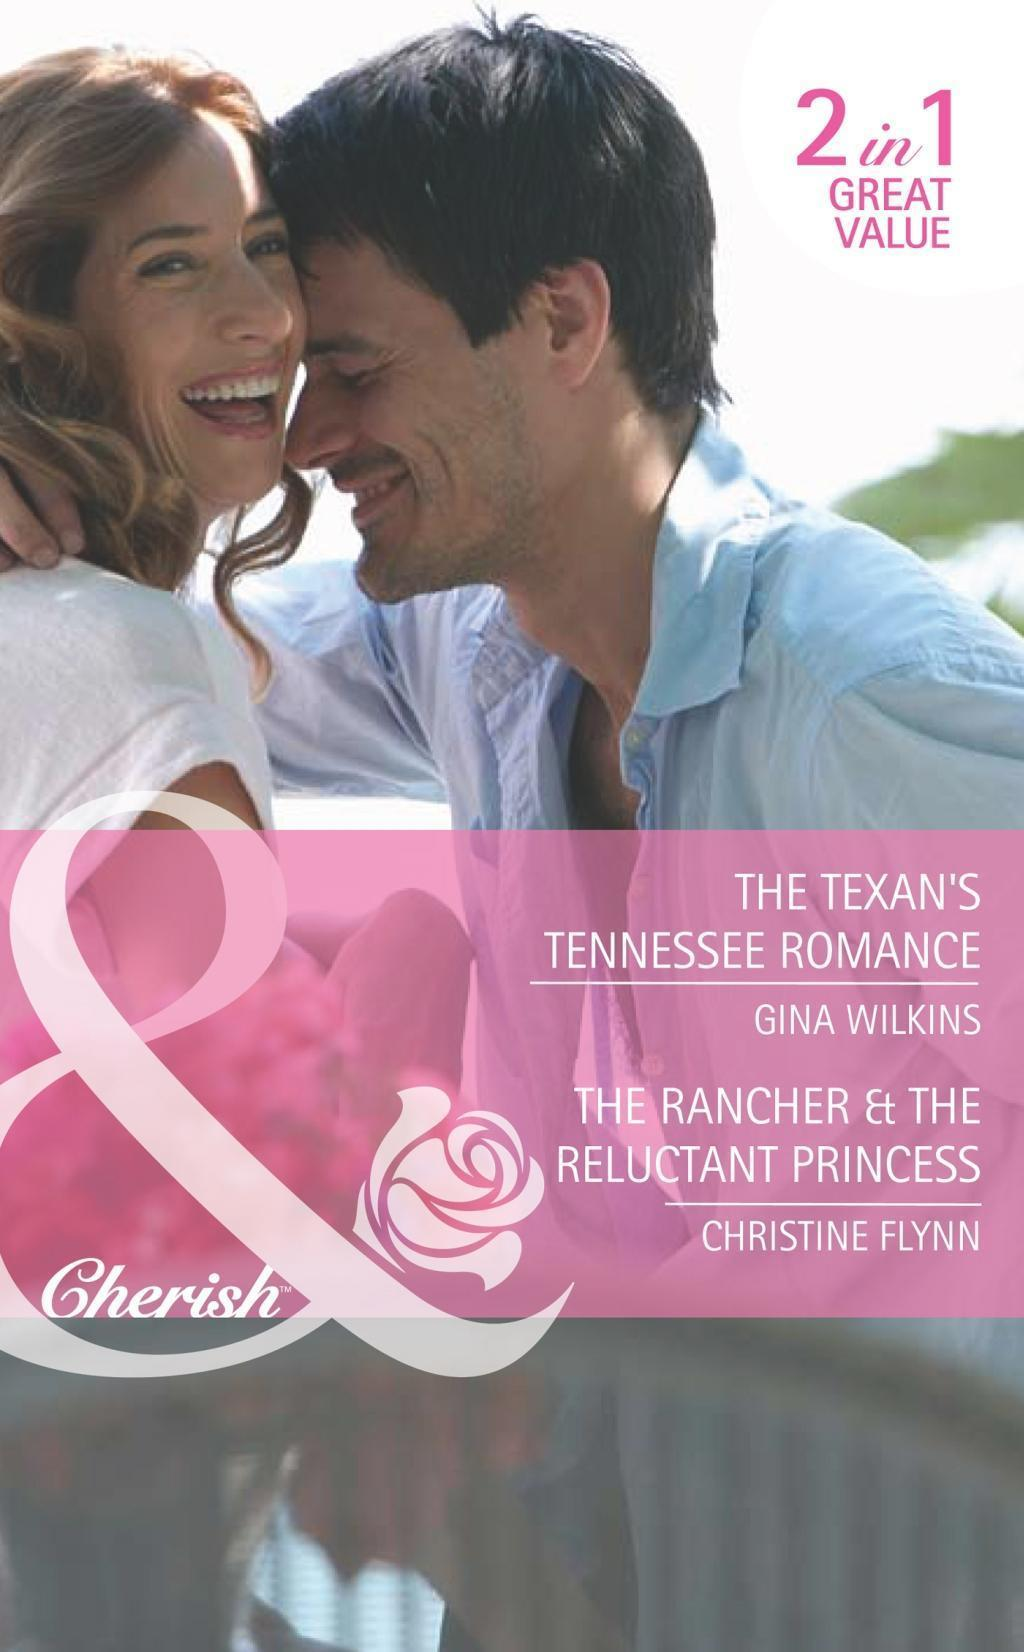 The Texan's Tennessee Romance / The Rancher & the Reluctant Princess: The Texan's Tennessee Romance / The Rancher & the Reluctant Princess (Mills & Boon Cherish)